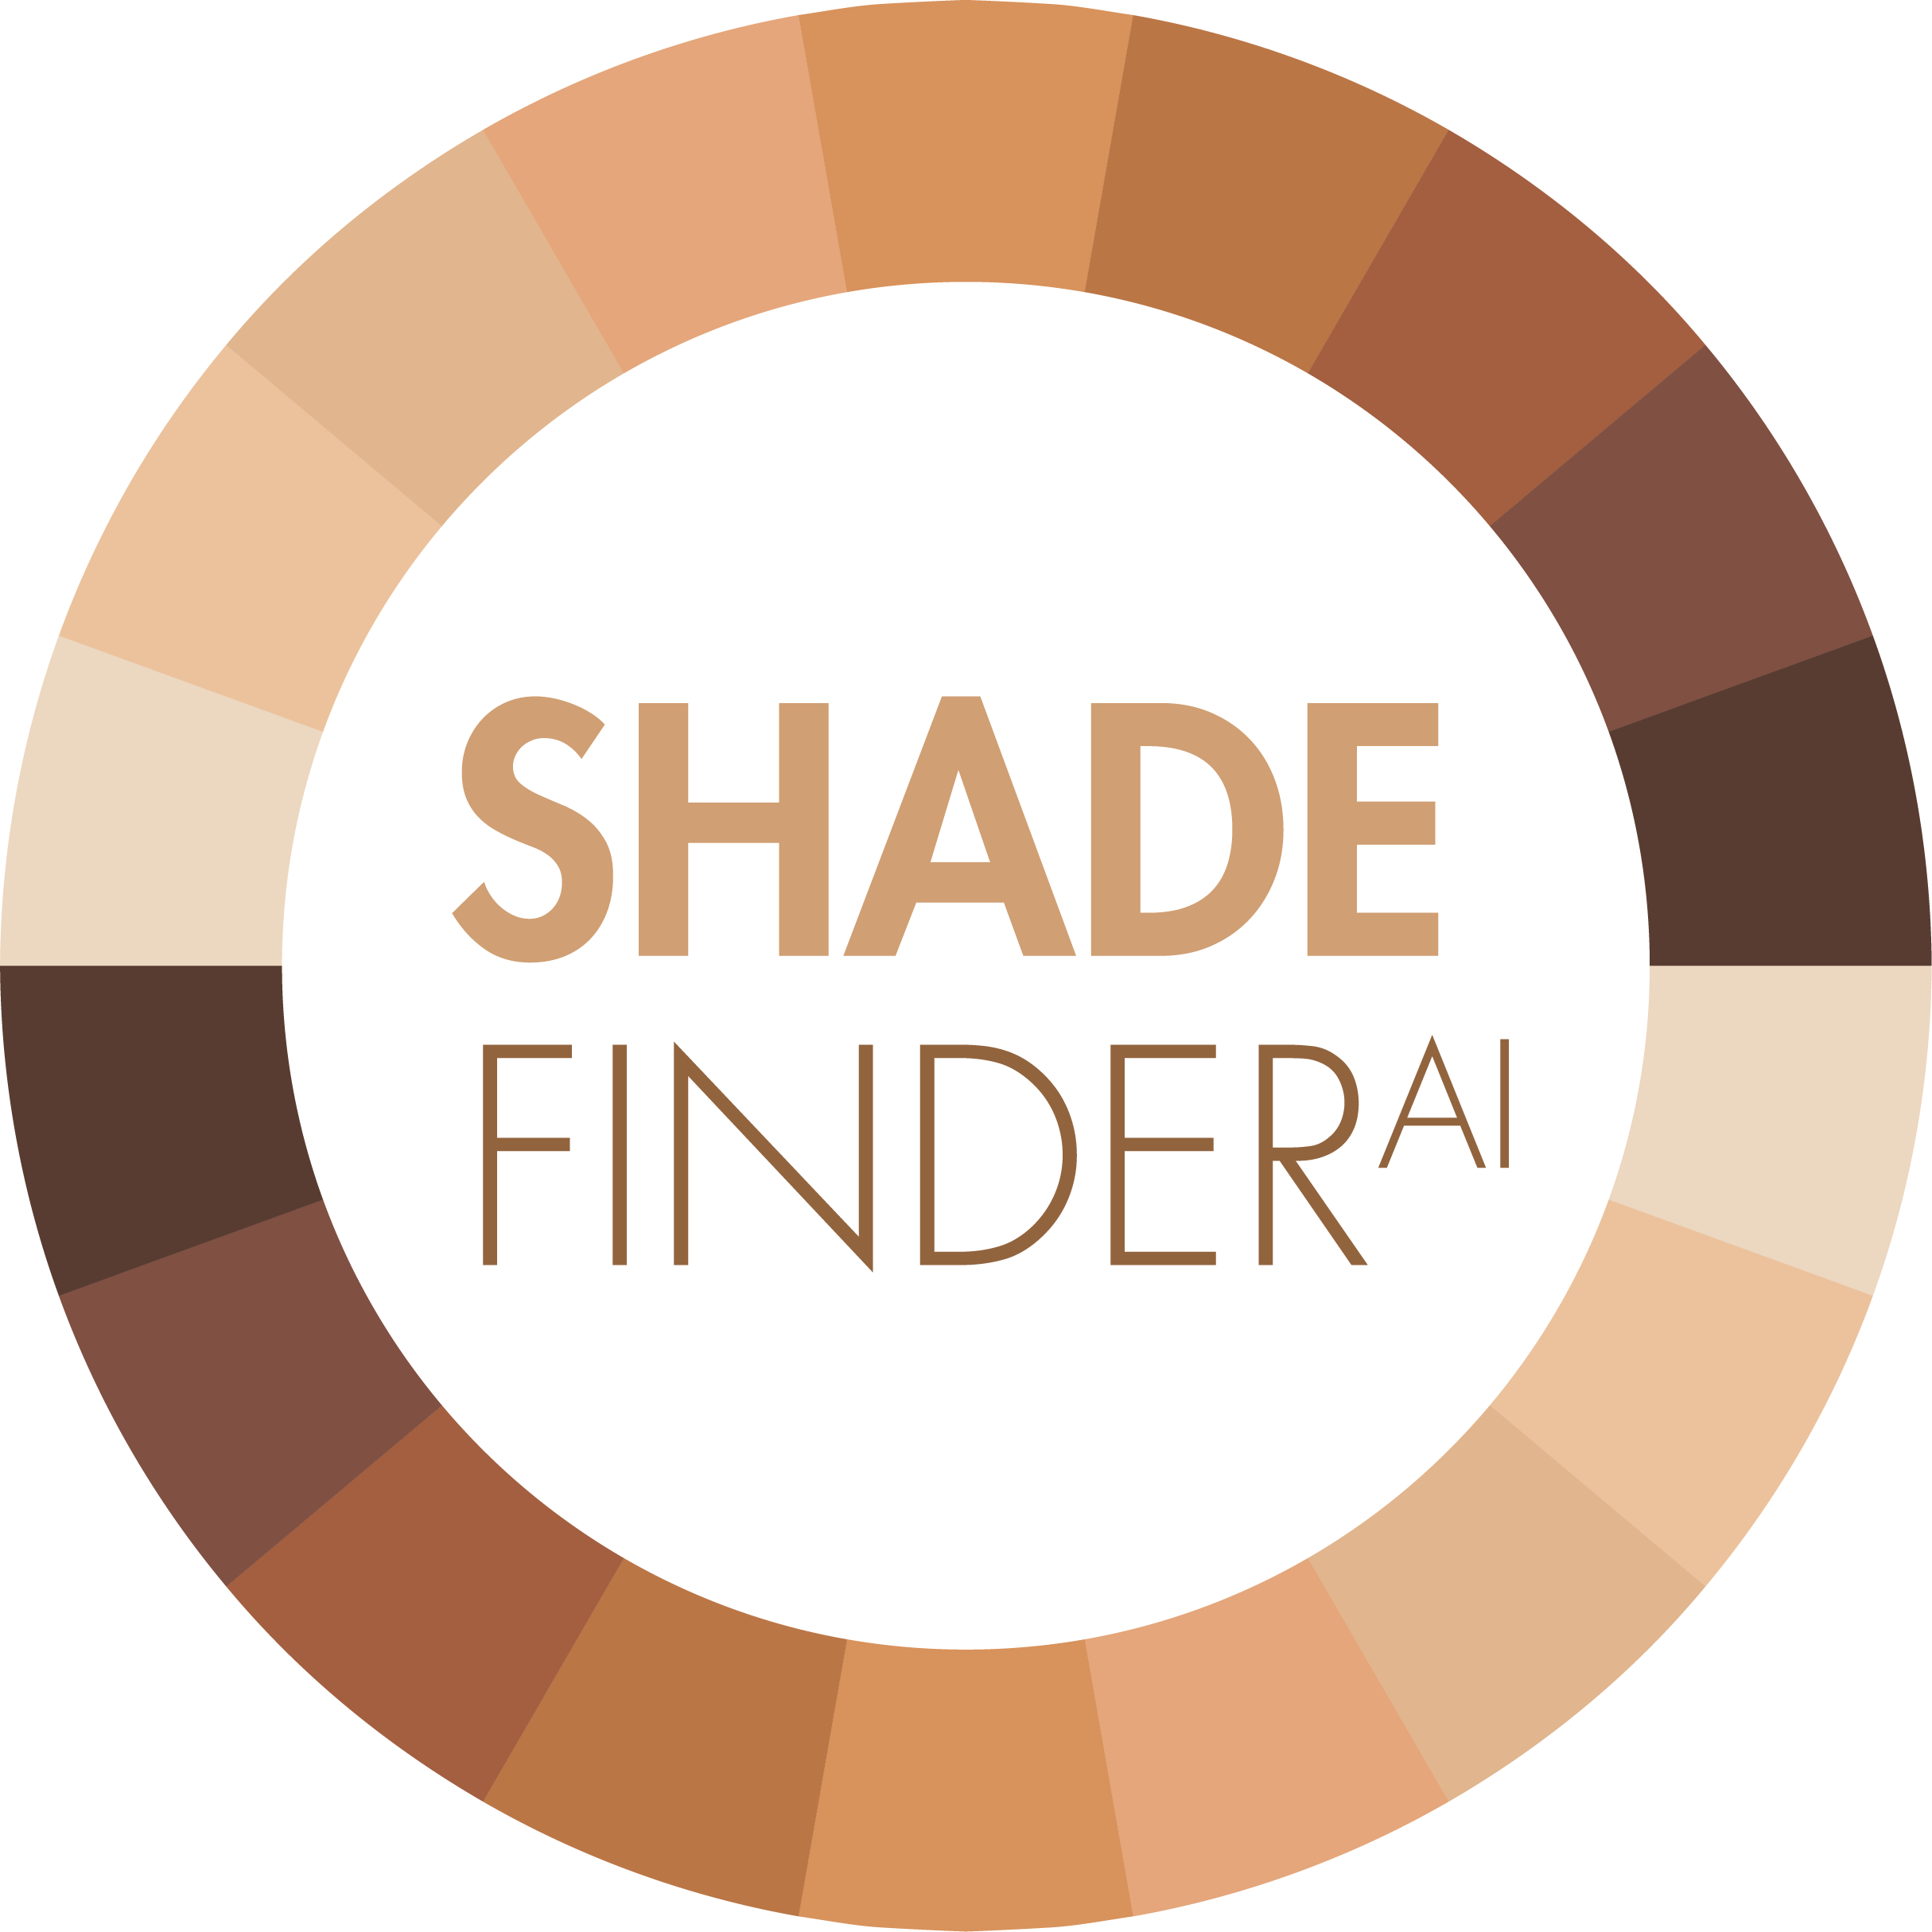 Shade Finder - Your Right Shade